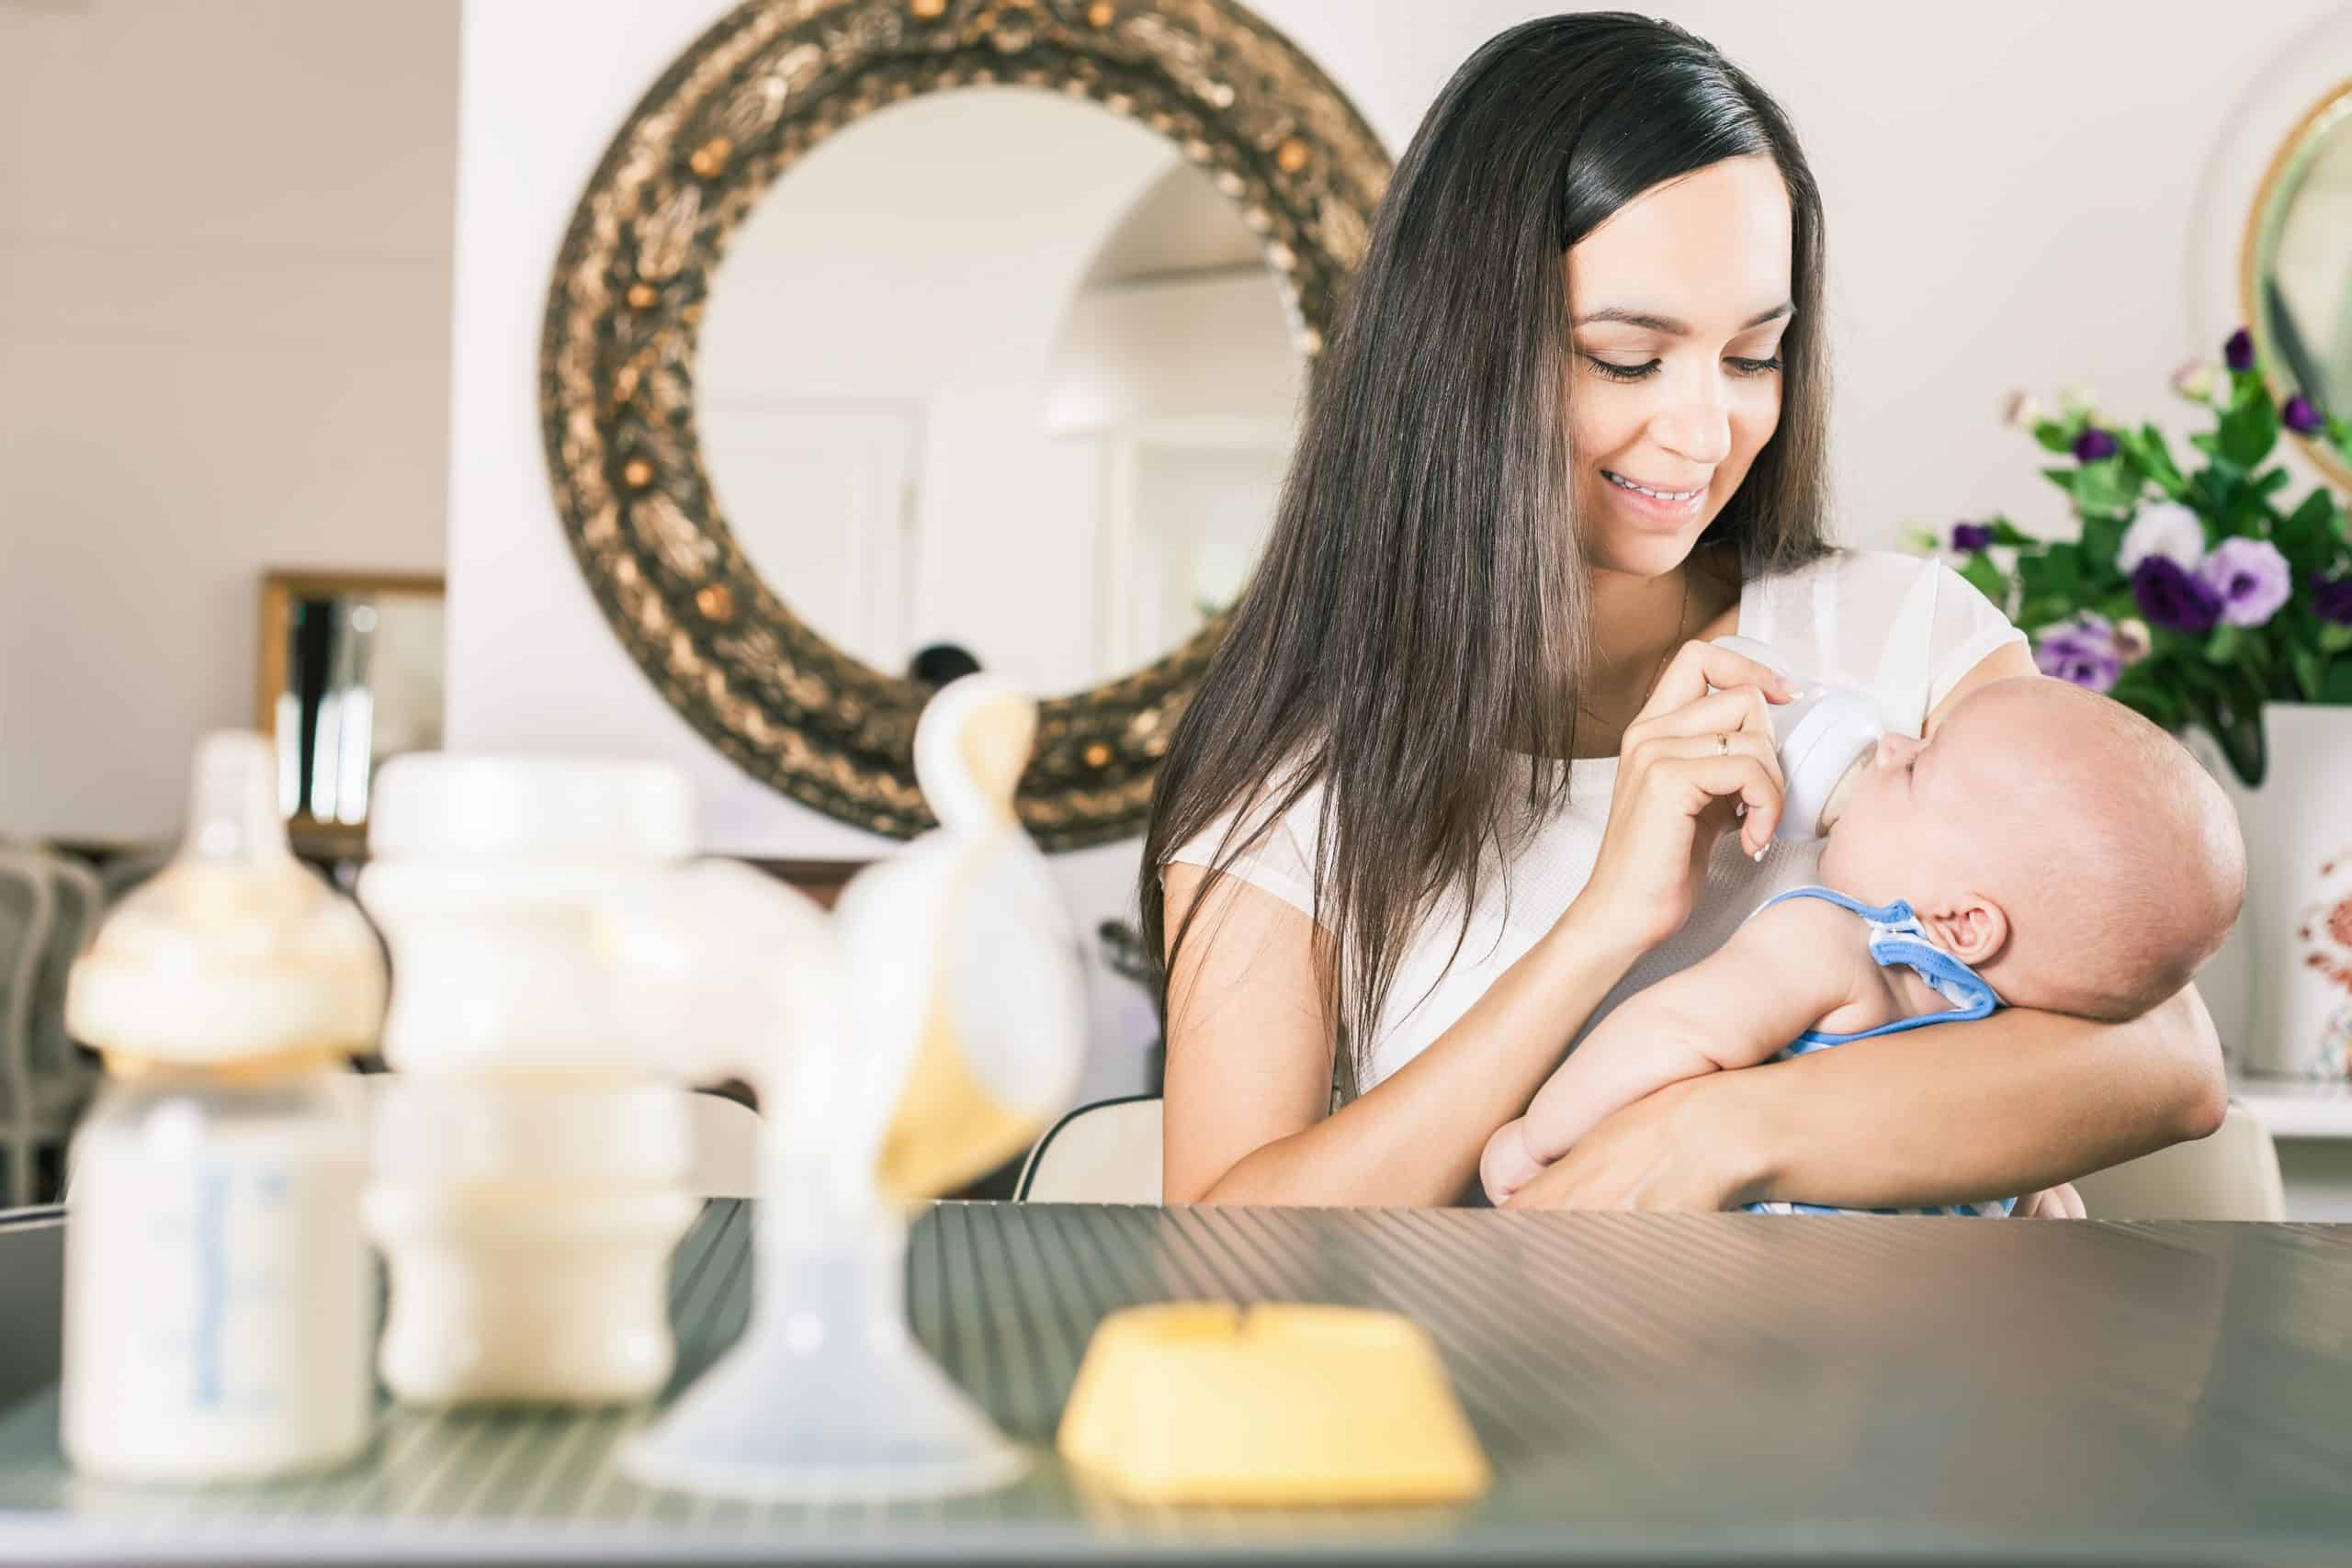 mother bottle-feeding baby with breast pump in foreground